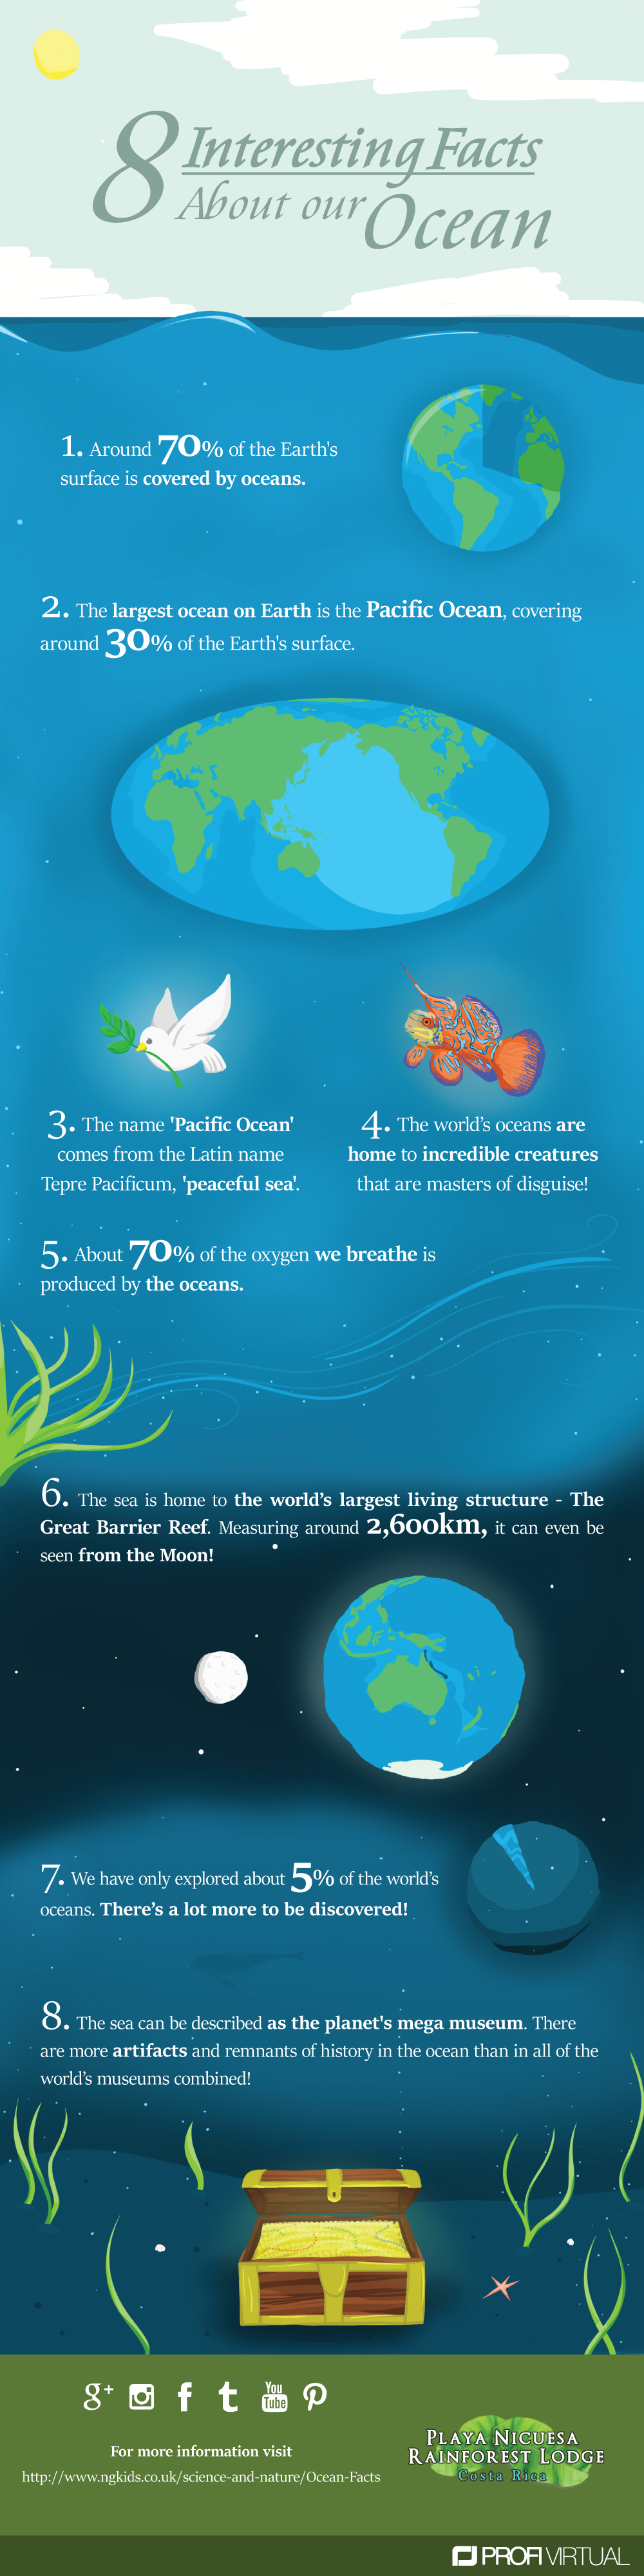 interesting facts about our ocean